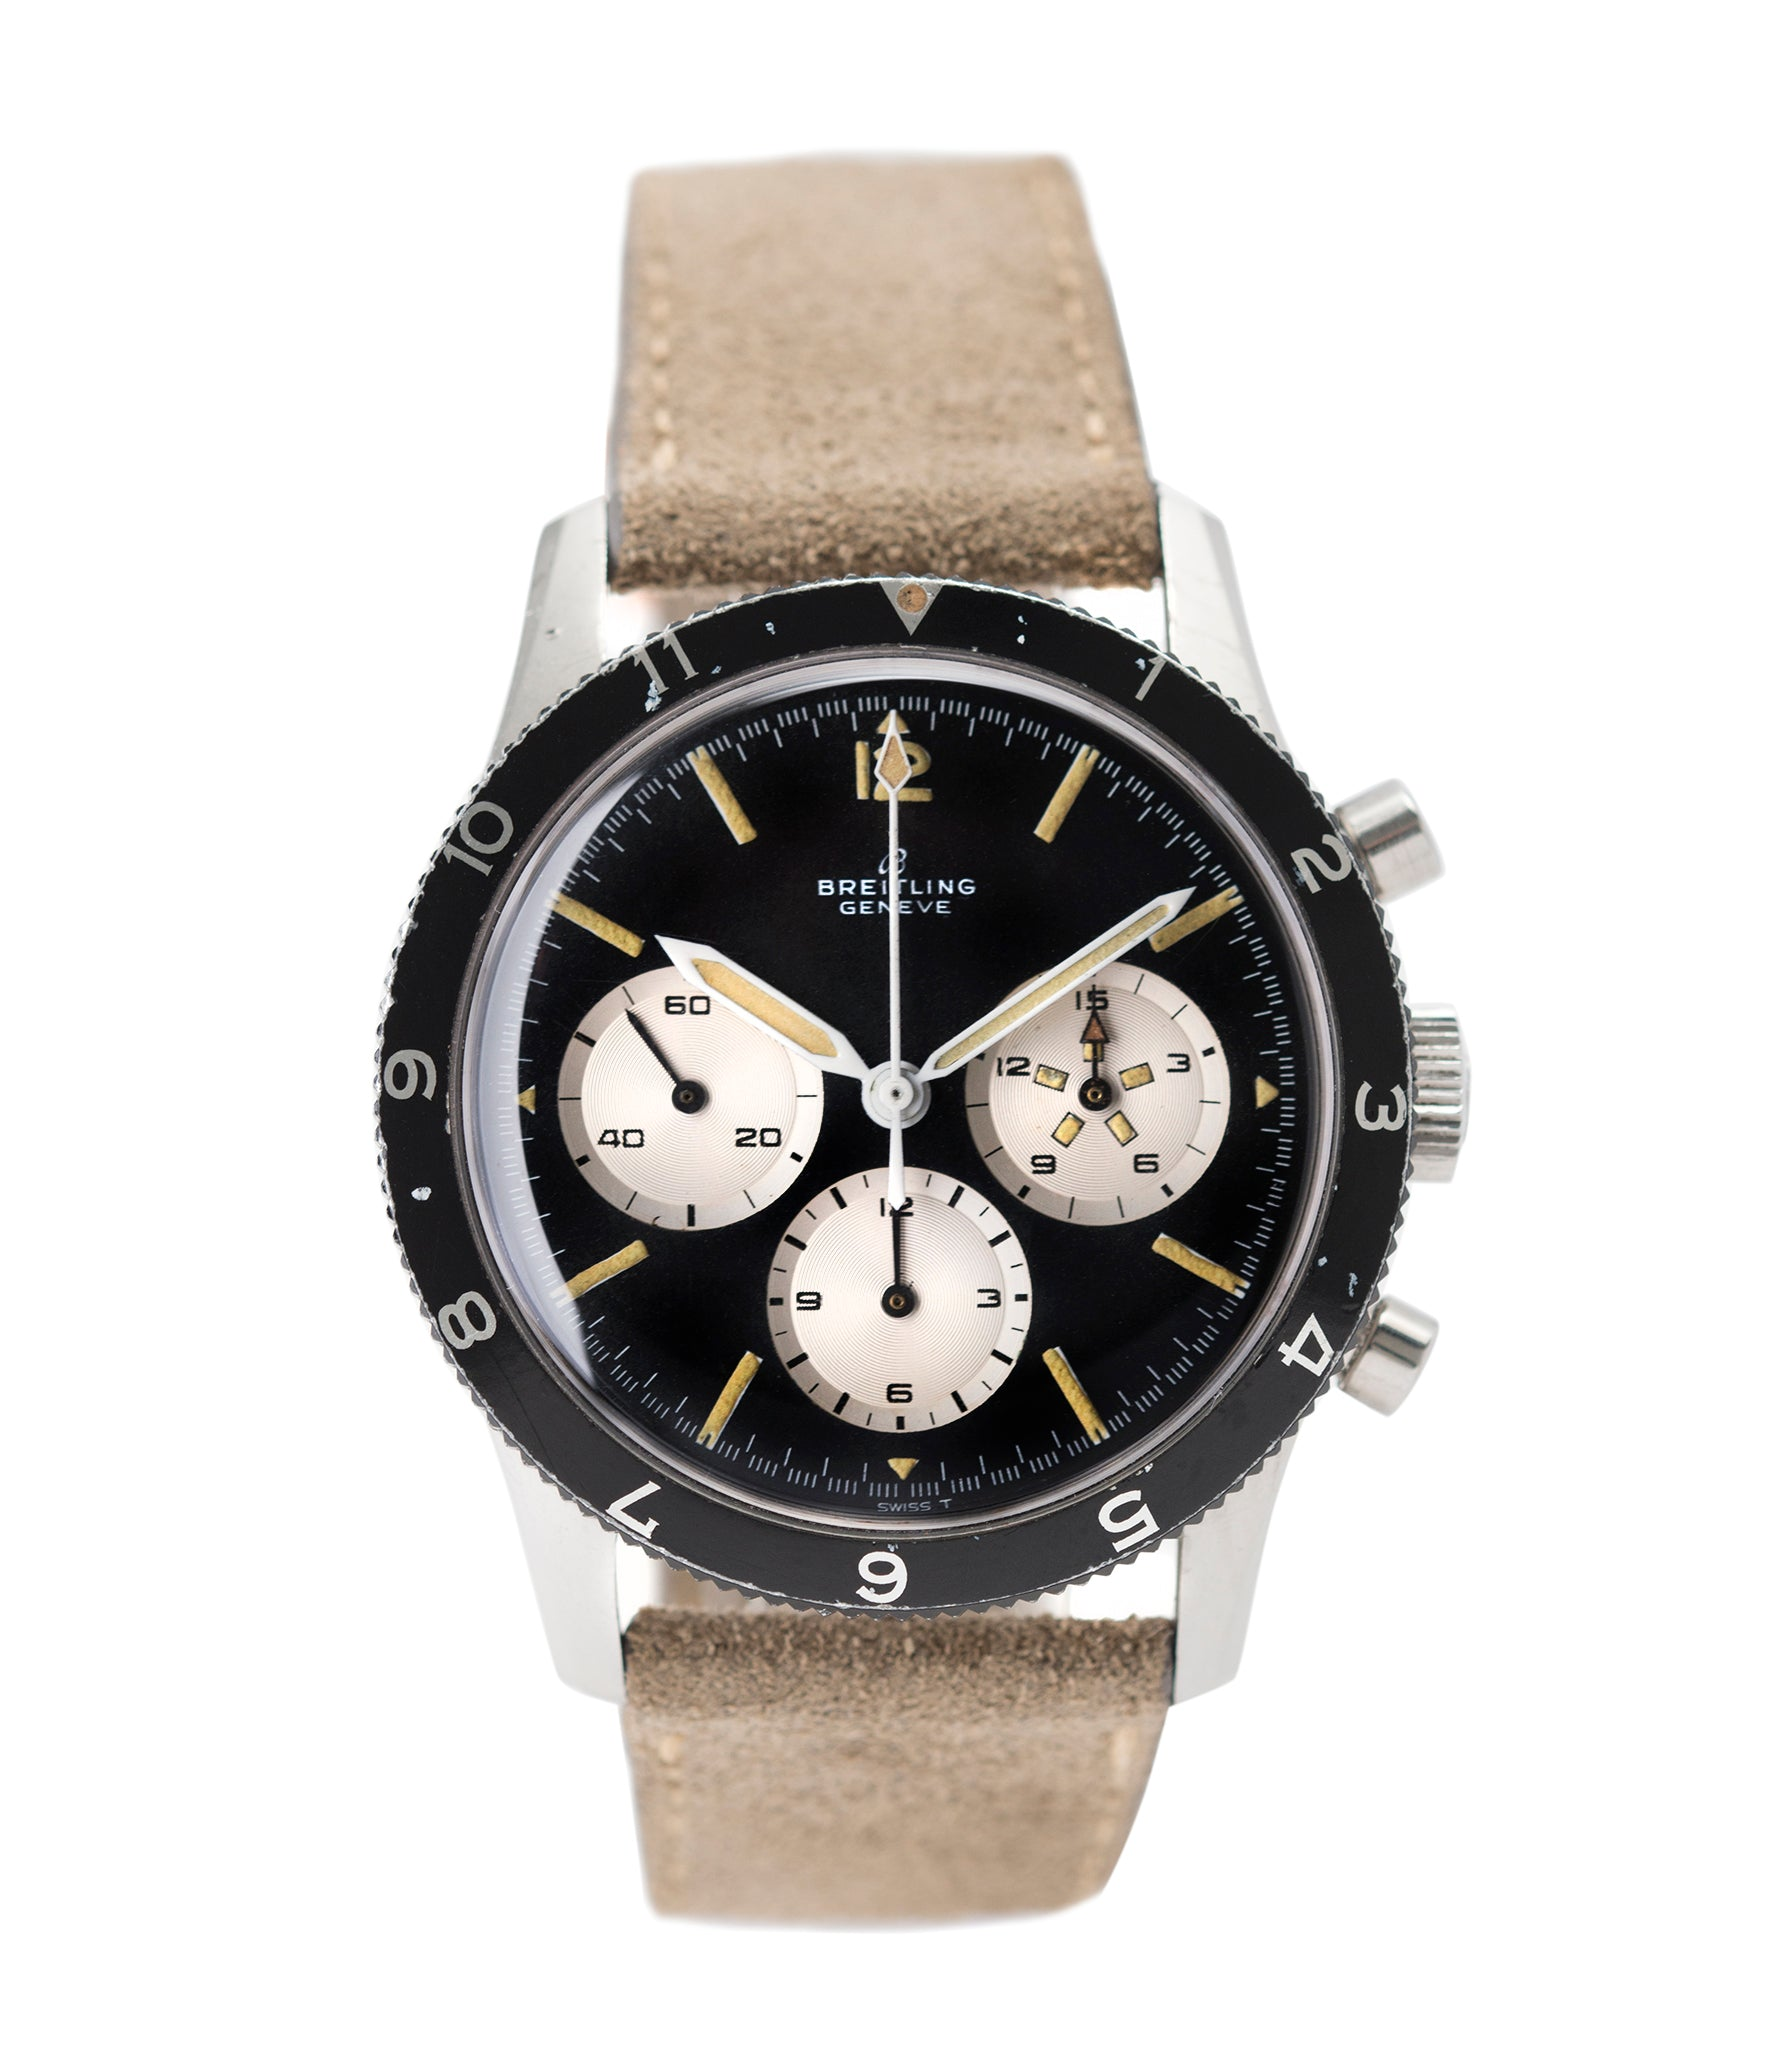 buy vintage Breitling 765 AVI pilot steel vintage chronograph watch online at A Collected Man London UK specialist of rare vintage watches